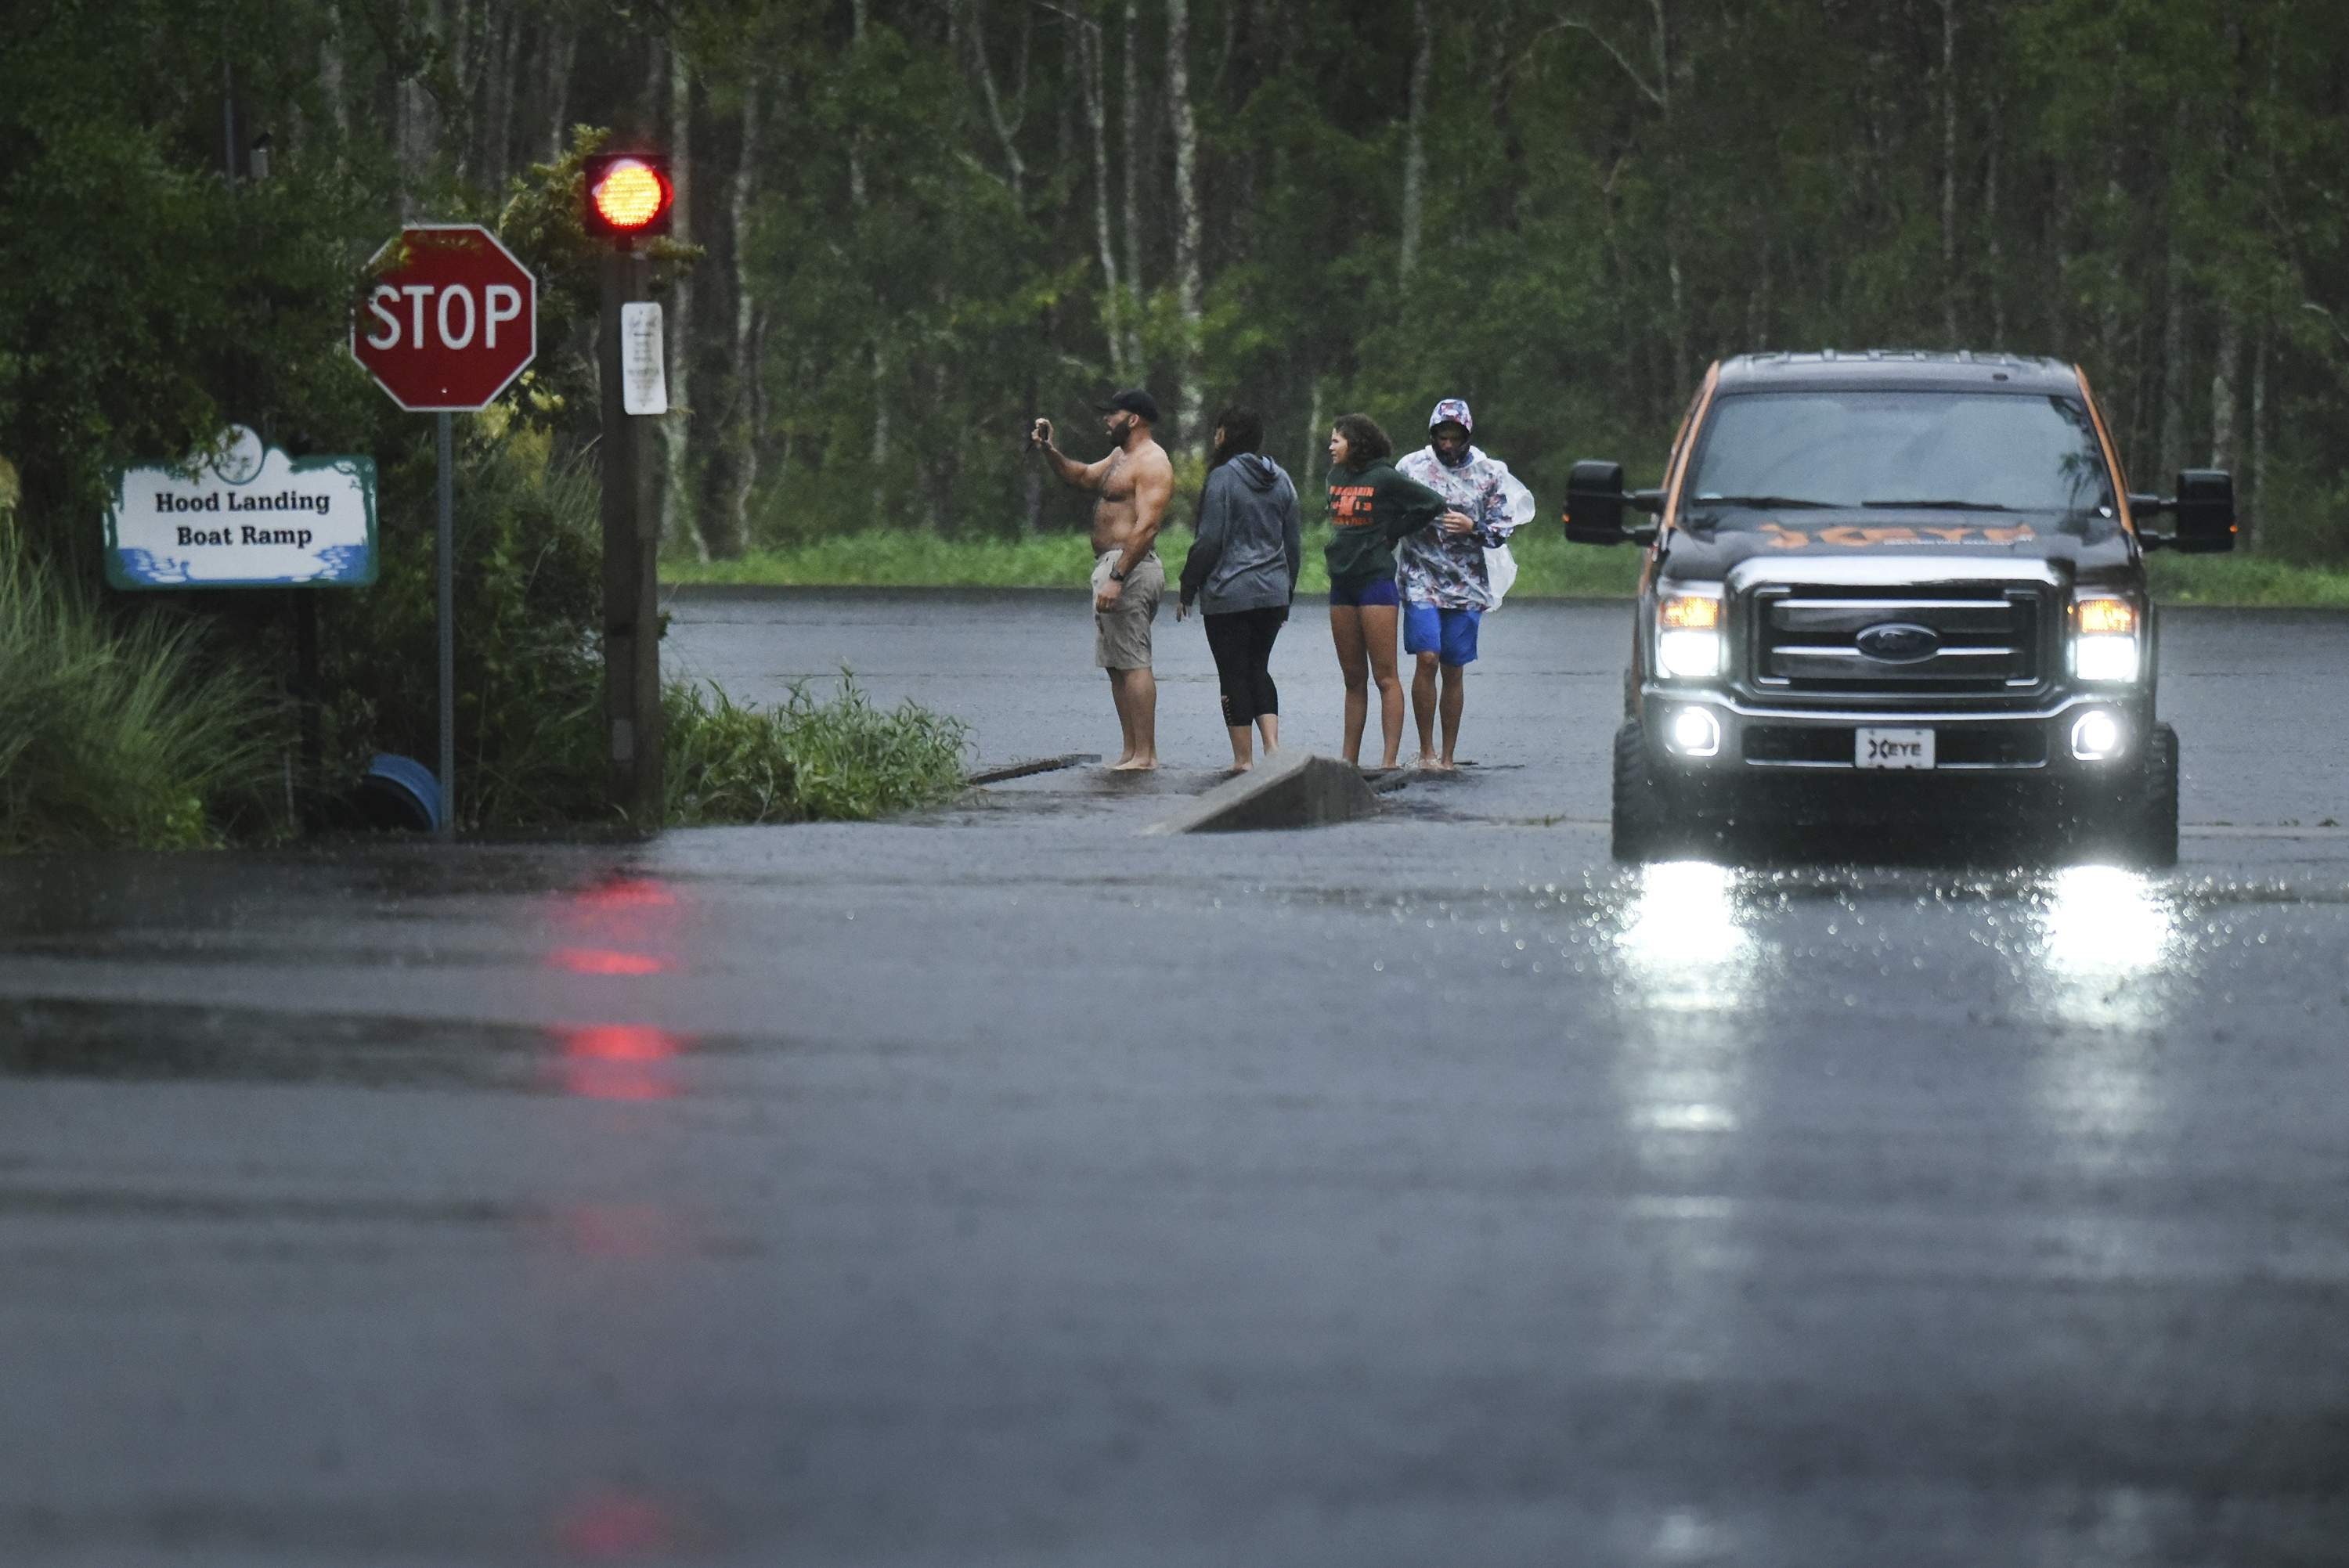 Occupants in a pickup truck get out to look at the rain swollen Julington Creek at the flooded boat ramp on Hood Landing Road by Clark's Fish Camp in Jacksonville, Fla., Sunday evening, Sept. 10, 2017, as Hurricane Irma passes the area. (Bob Self/The Florida Times-Union via AP)